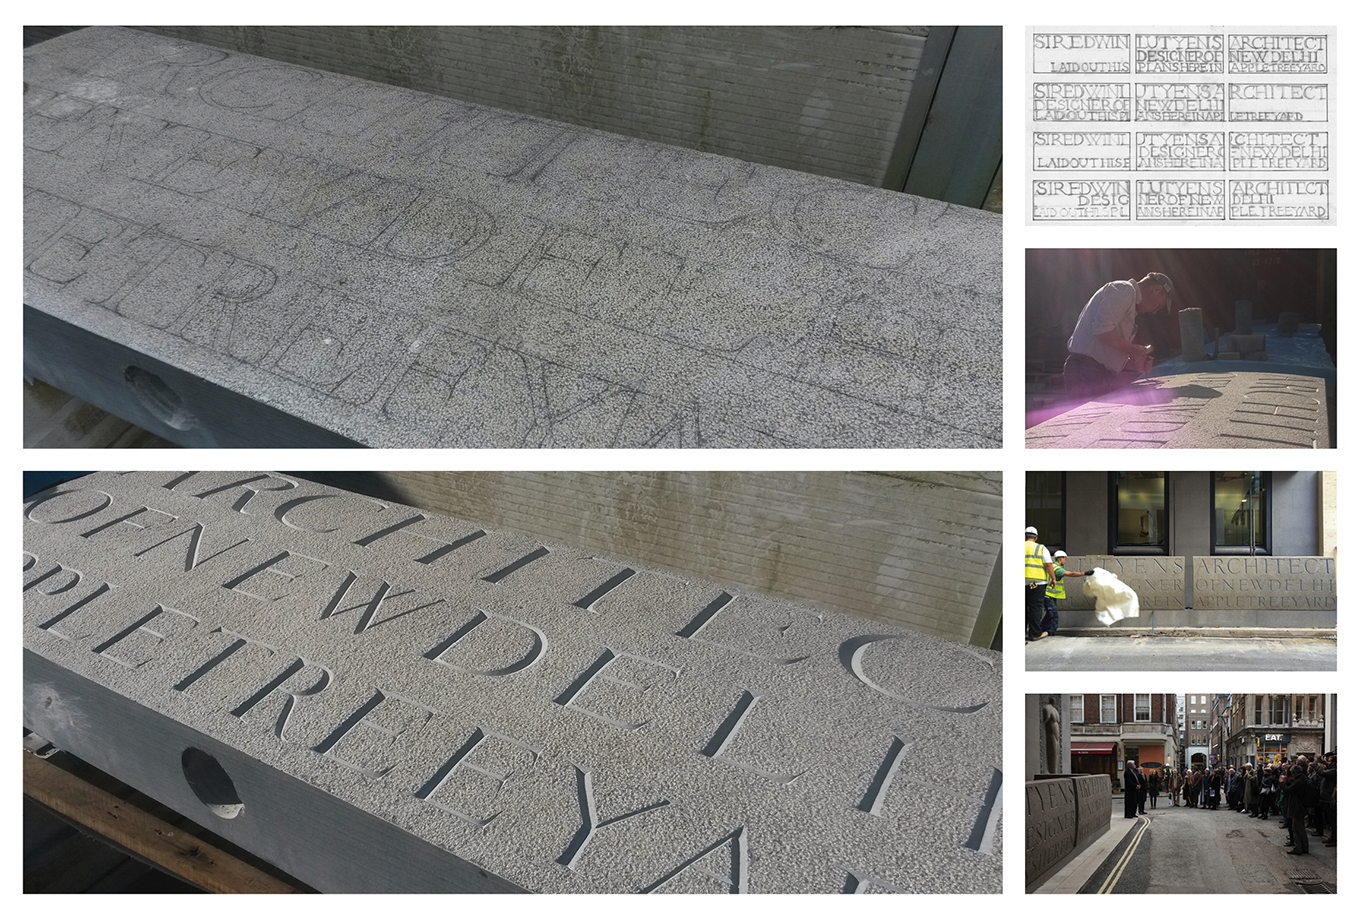 St James's Square Typesetting for Stone Carving